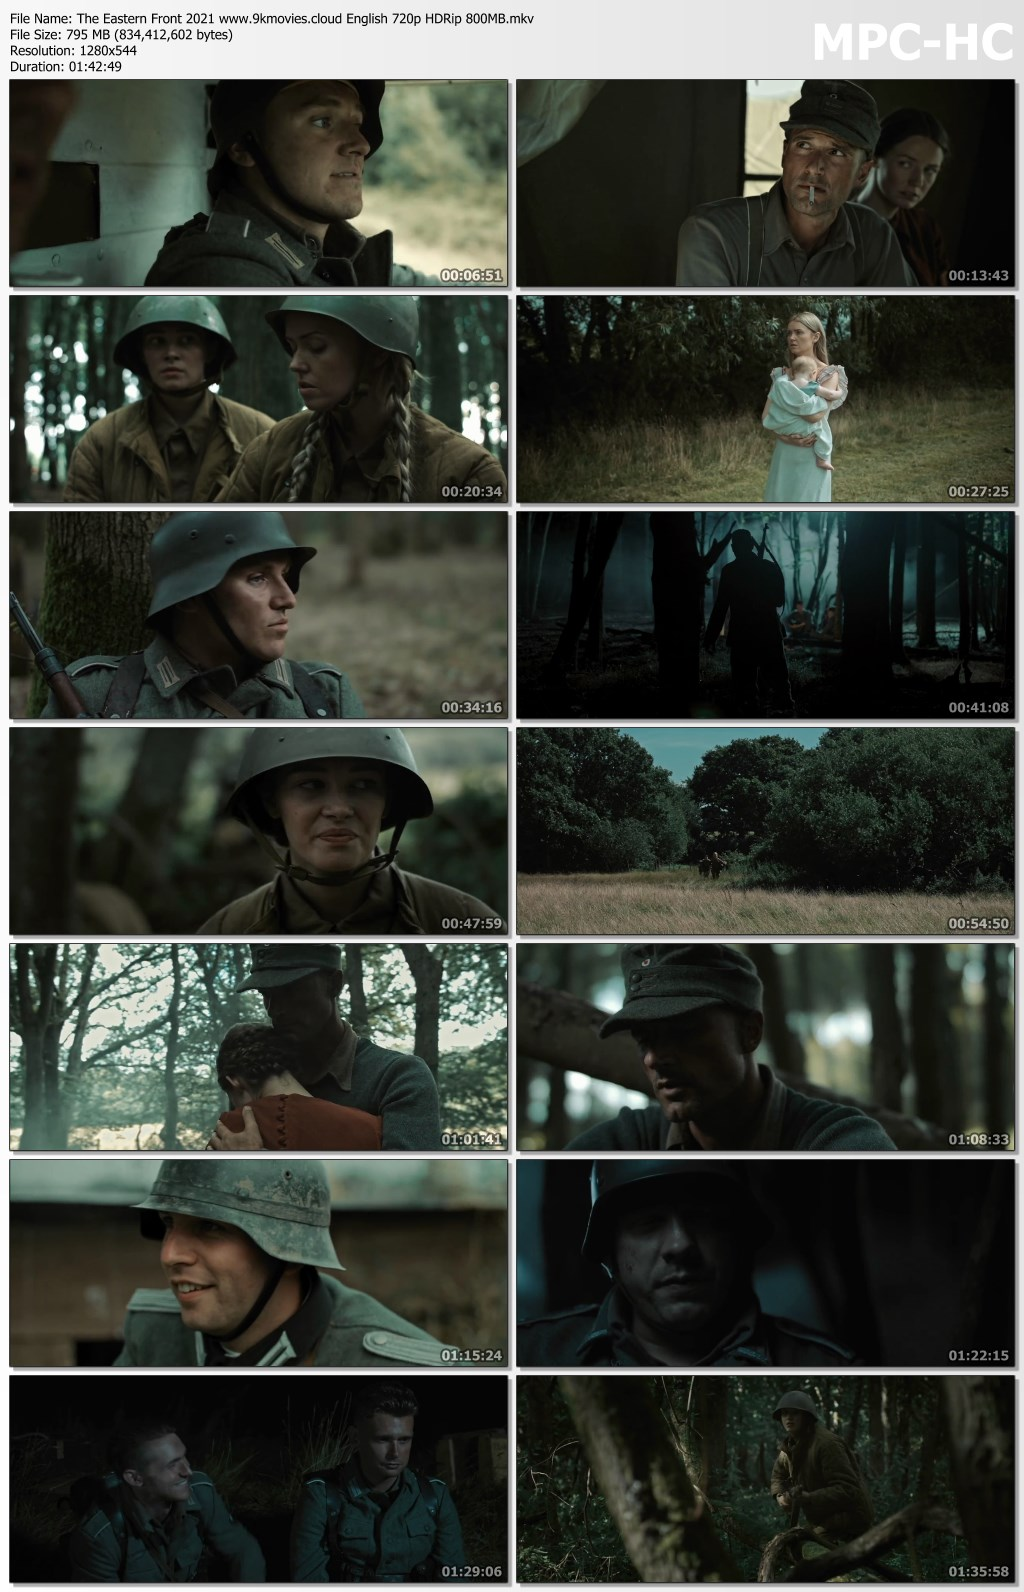 The Eastern Front 2021 English 720p HDRip 800MB